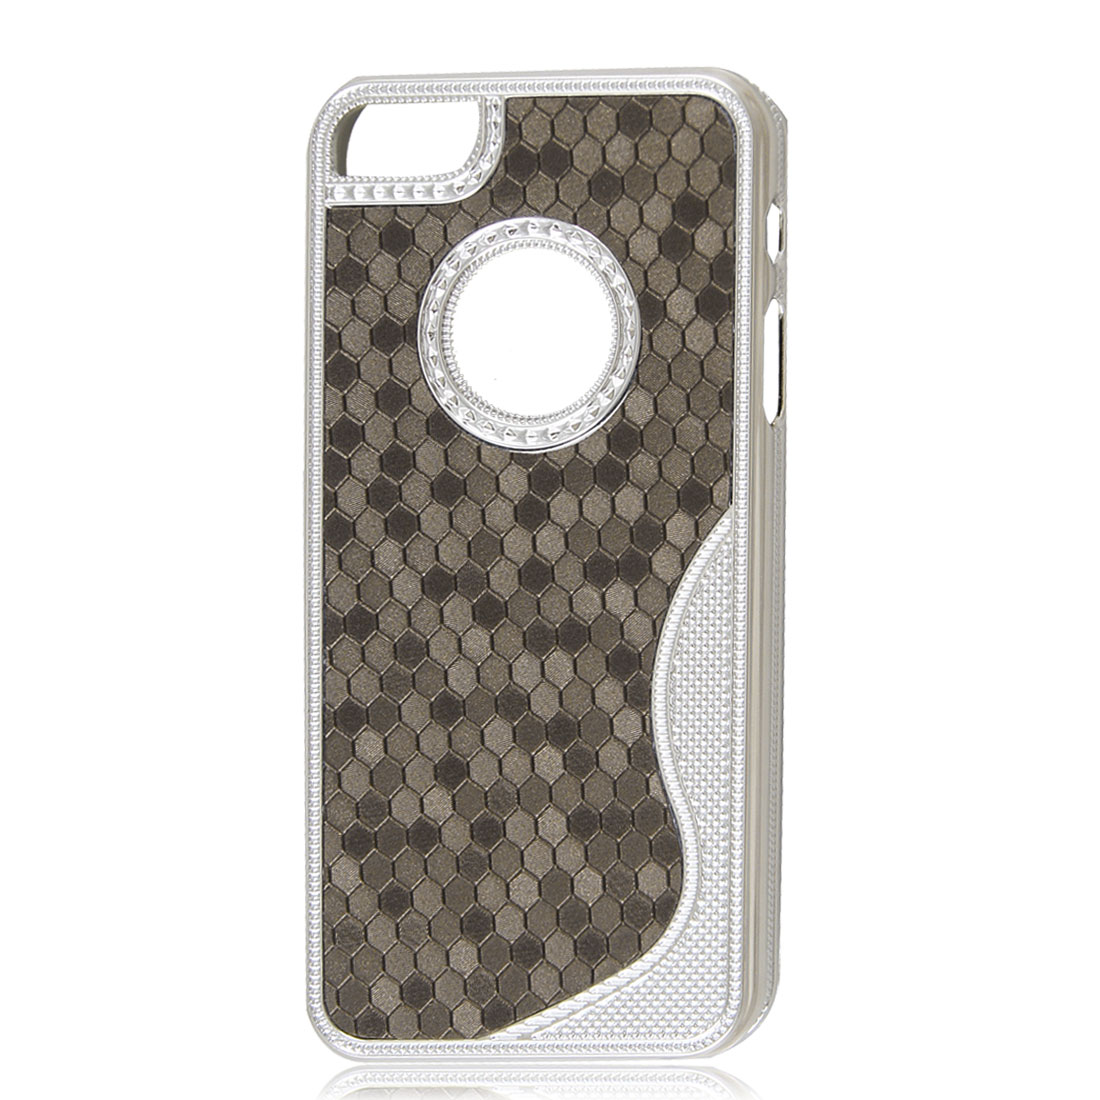 Coffee Color S-line Hexagon Hard Back Case Cover for iPhone 5 5G 5th Gen